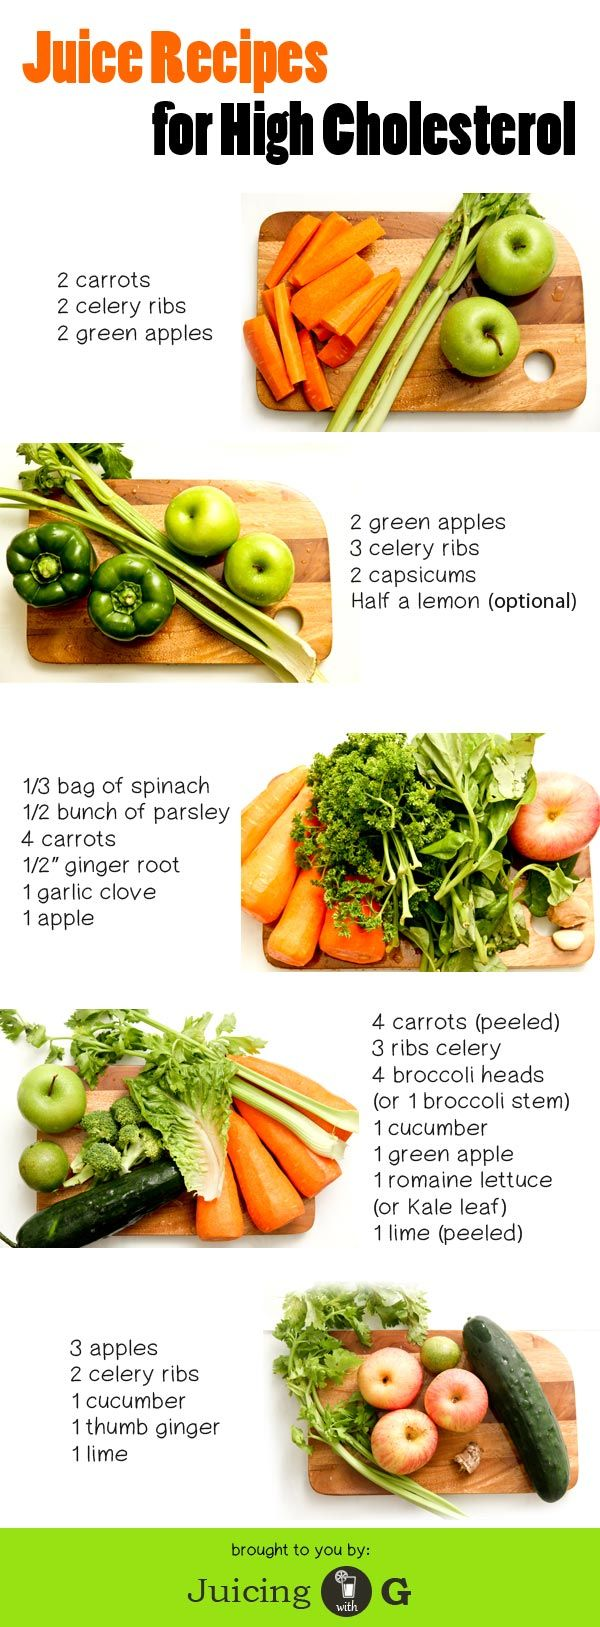 6 Juice Recipes That Will Help Control High Cholesterol Great For